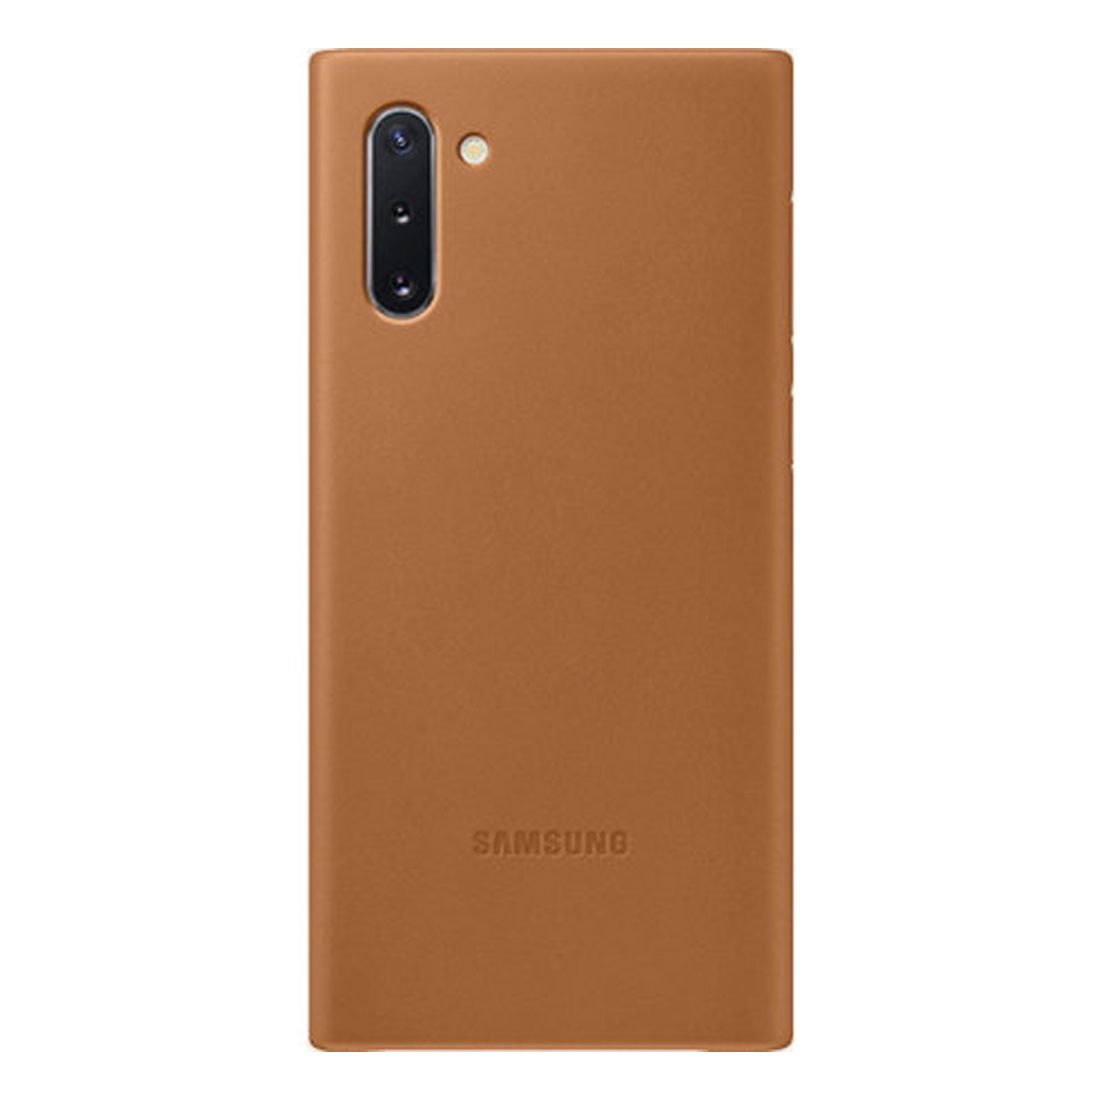 Samsung Galaxy Note 10 Leather Back Cover - Brown